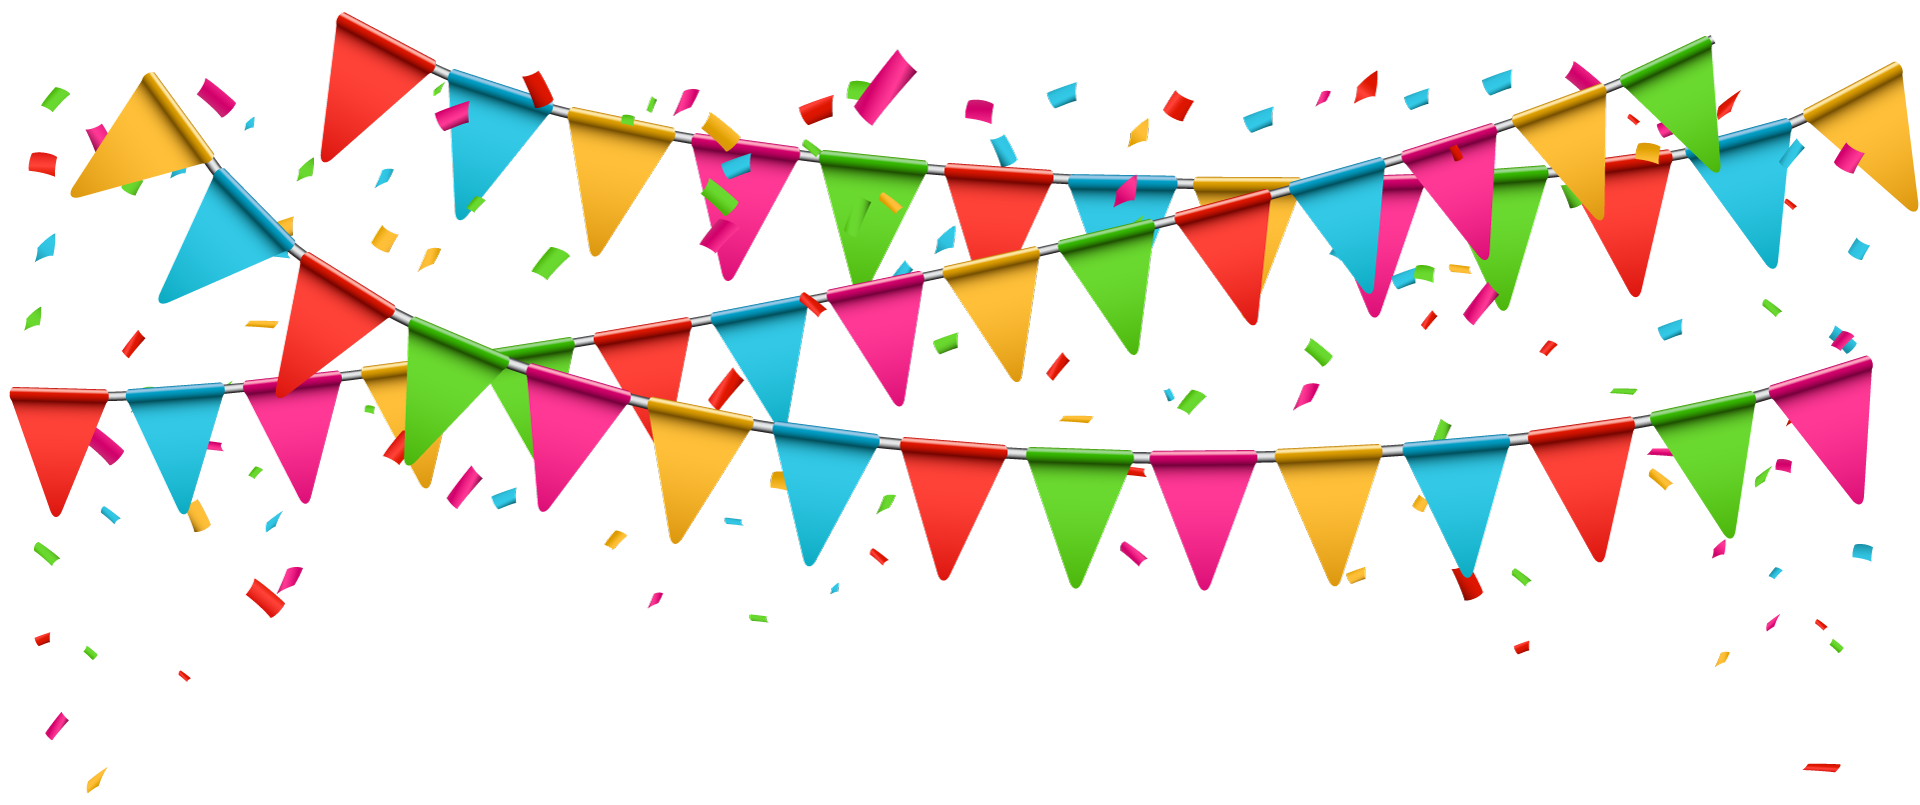 Party png pictures free. Transparent decoration birthday image royalty free